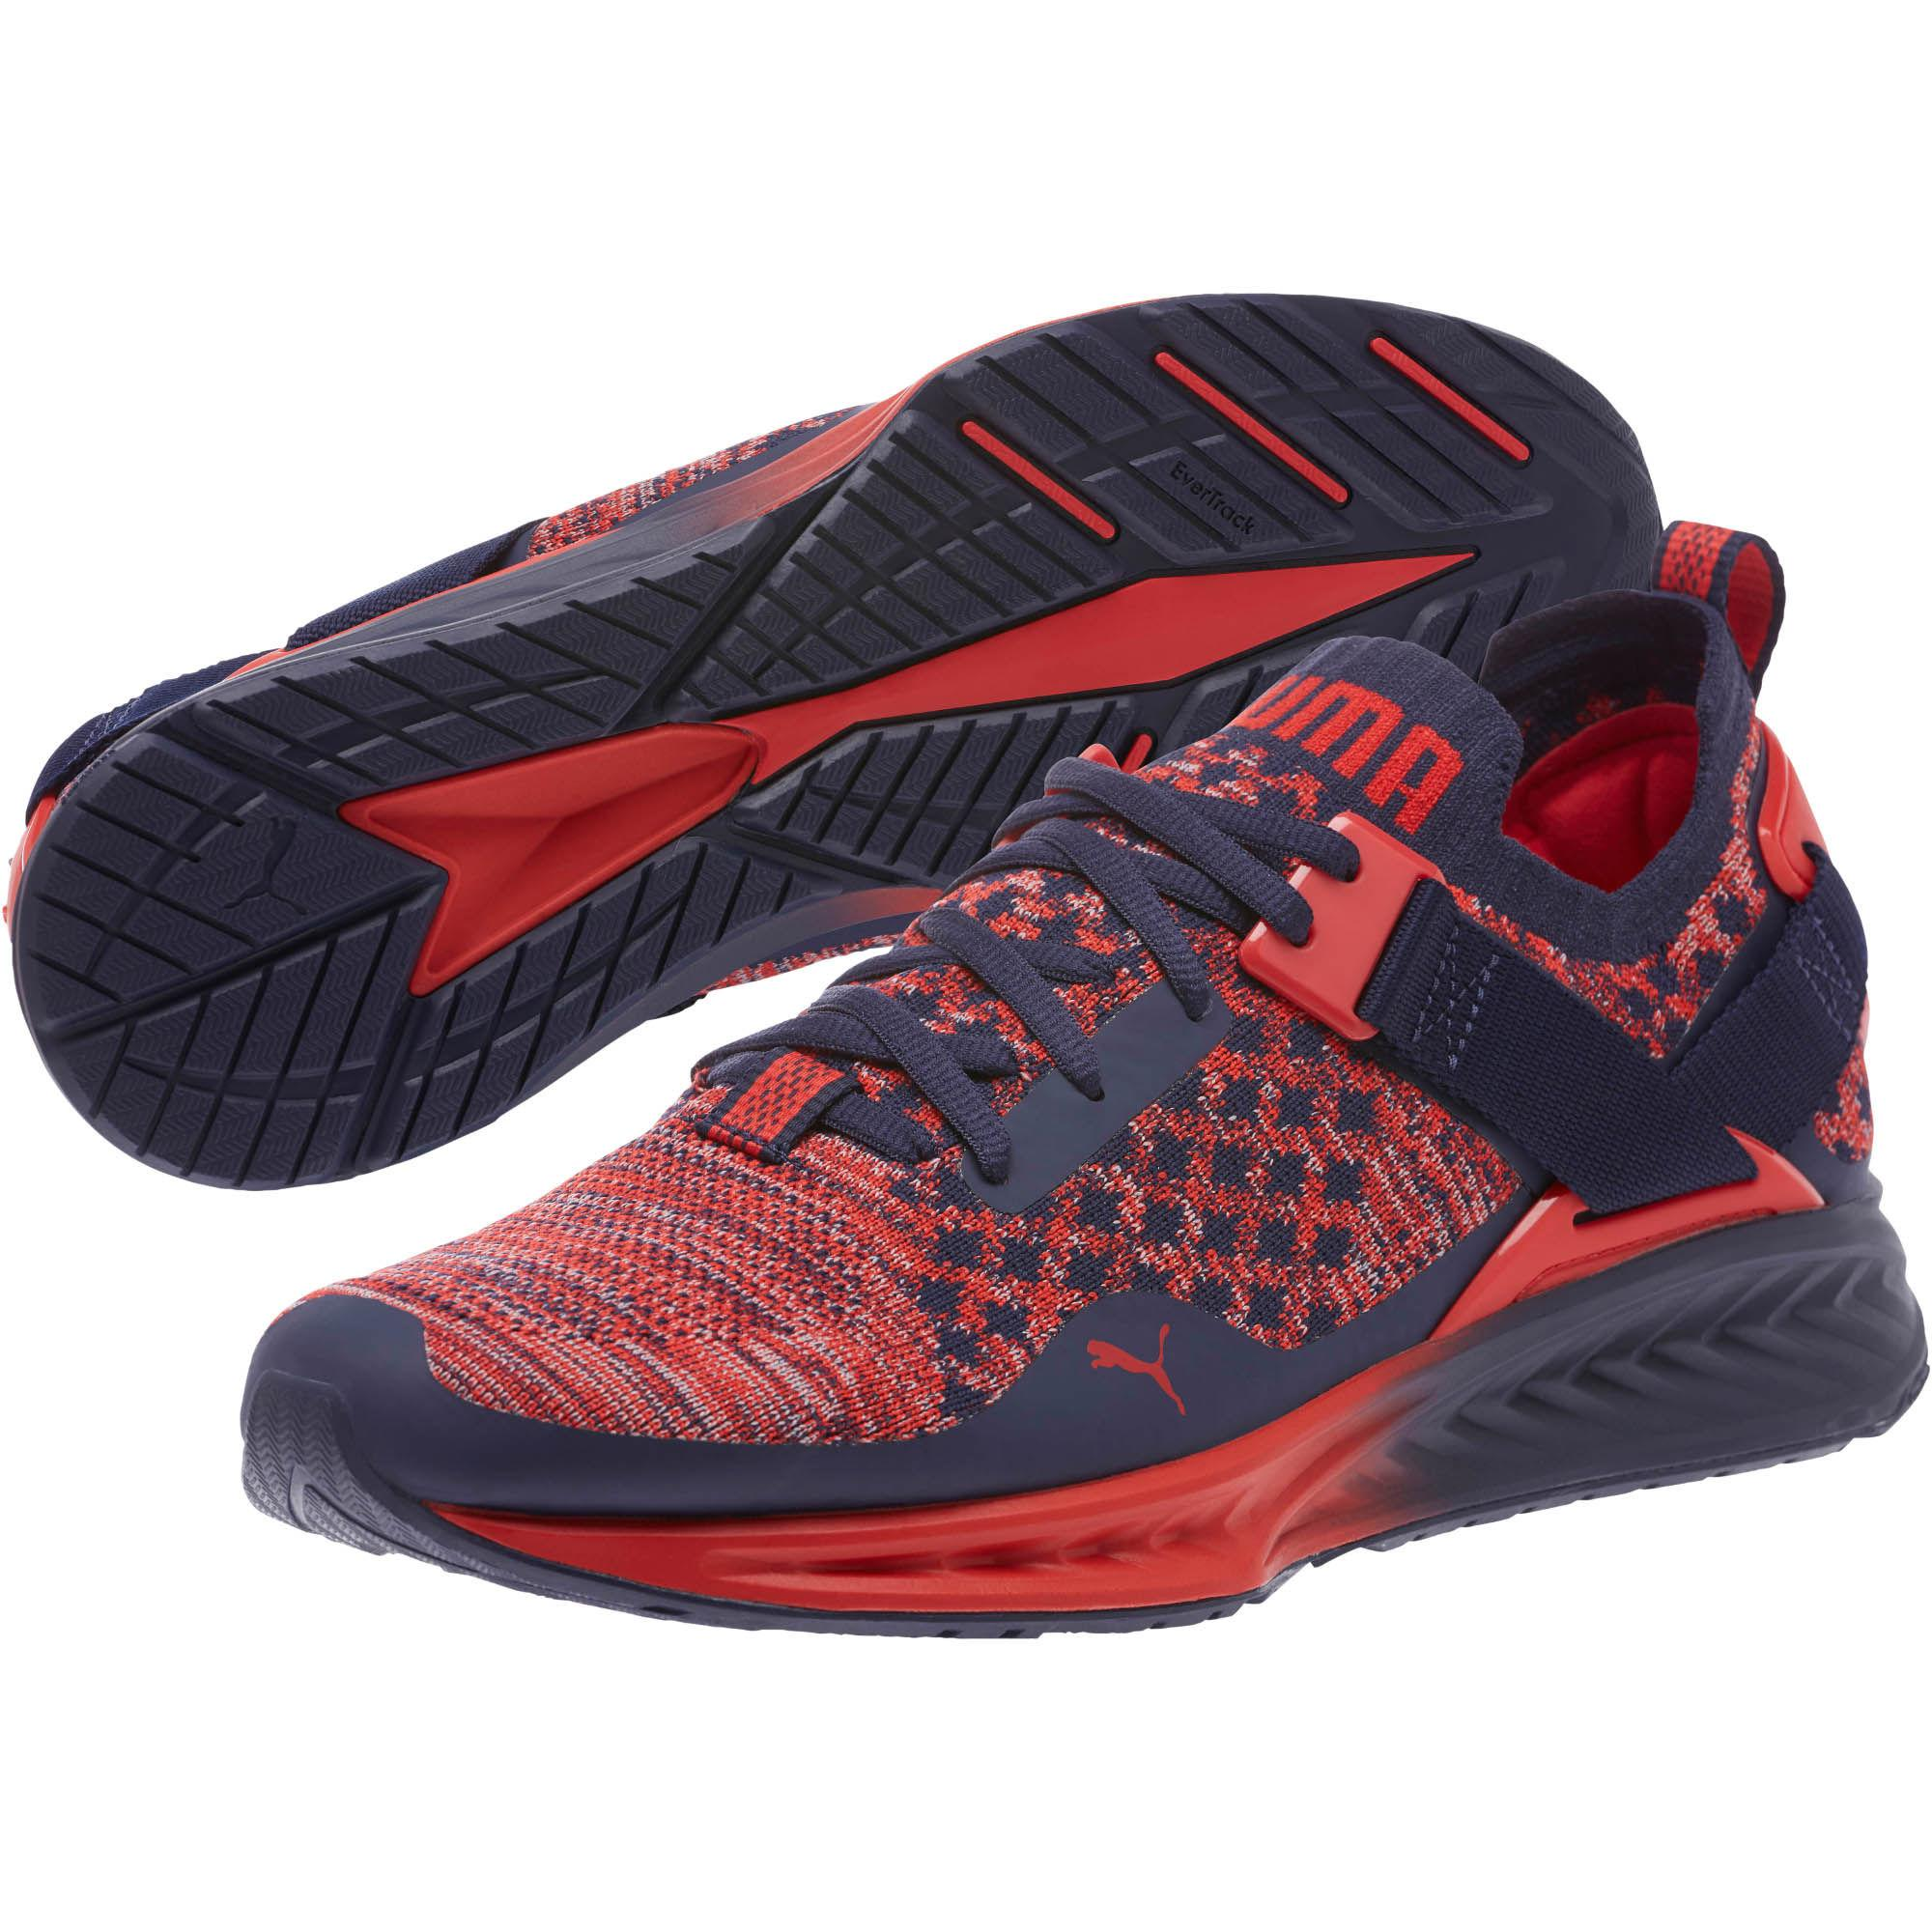 Lyst - PUMA Ignite Evoknit Lo Fade Men s Training Shoes in Red for Men 01a0961c2